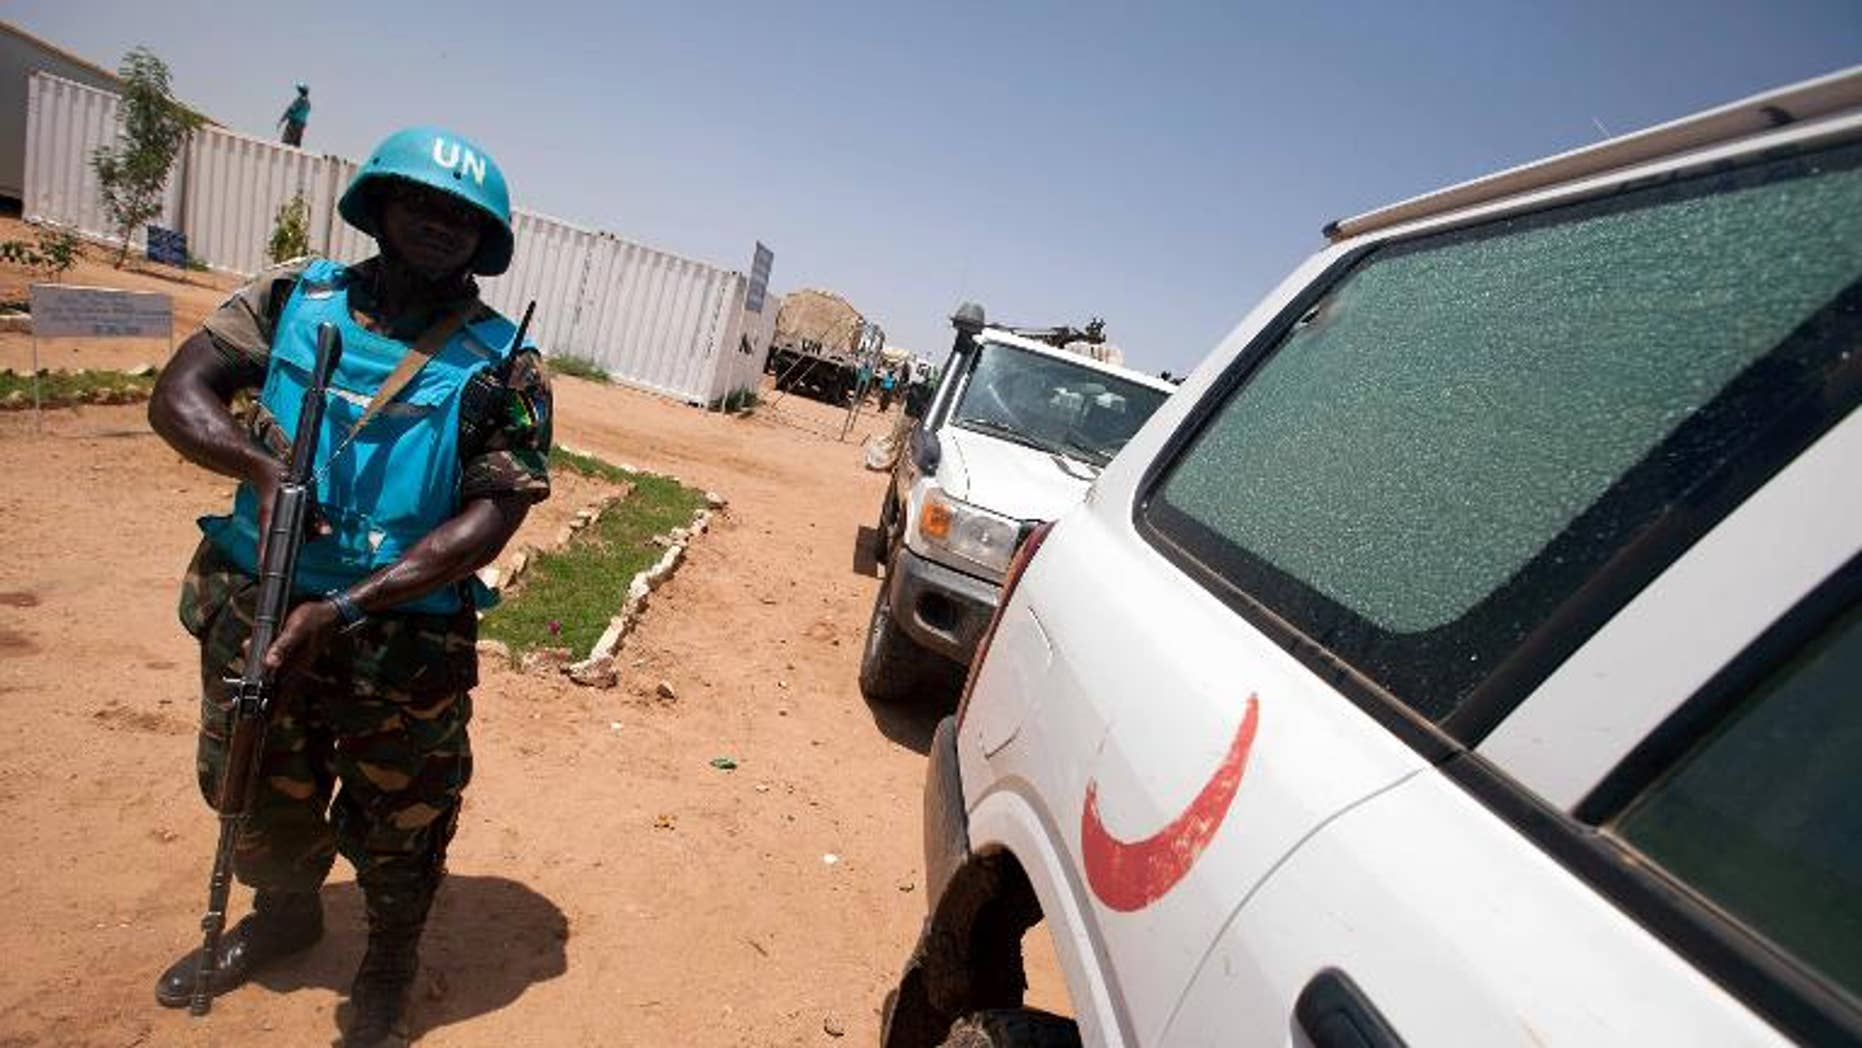 A handout picture released by UNAMID on July 14, 2013 shows a peacekeeper in South Darfur